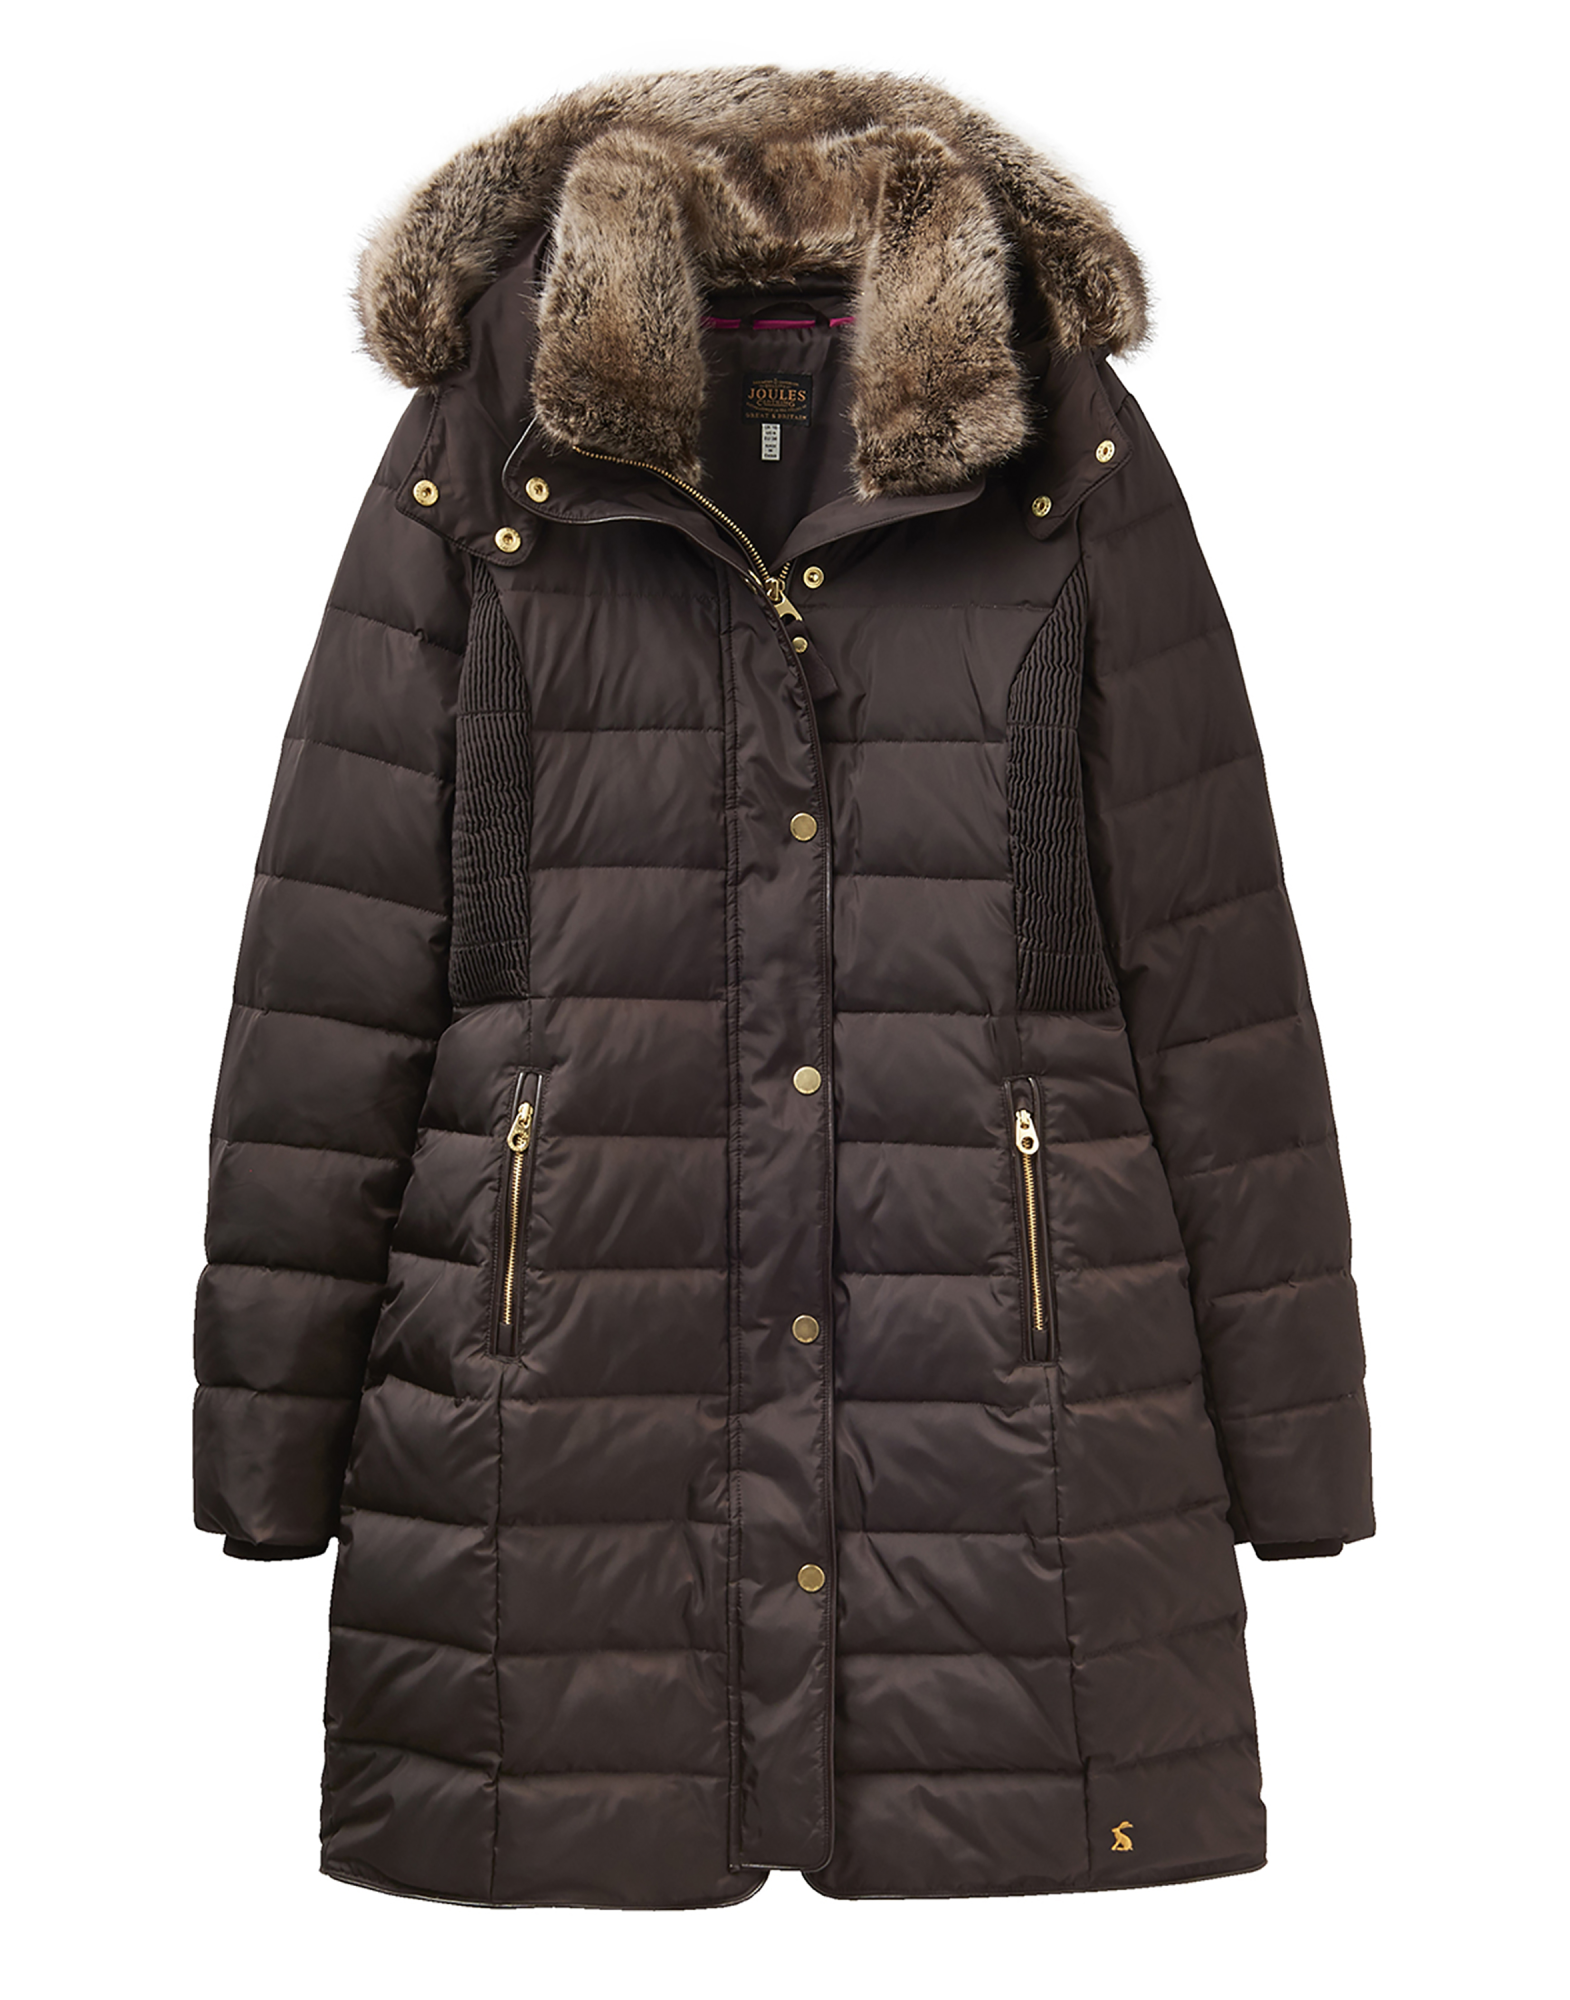 Joules Caldecott Womens Padded Coat - Dark Brown | eBay